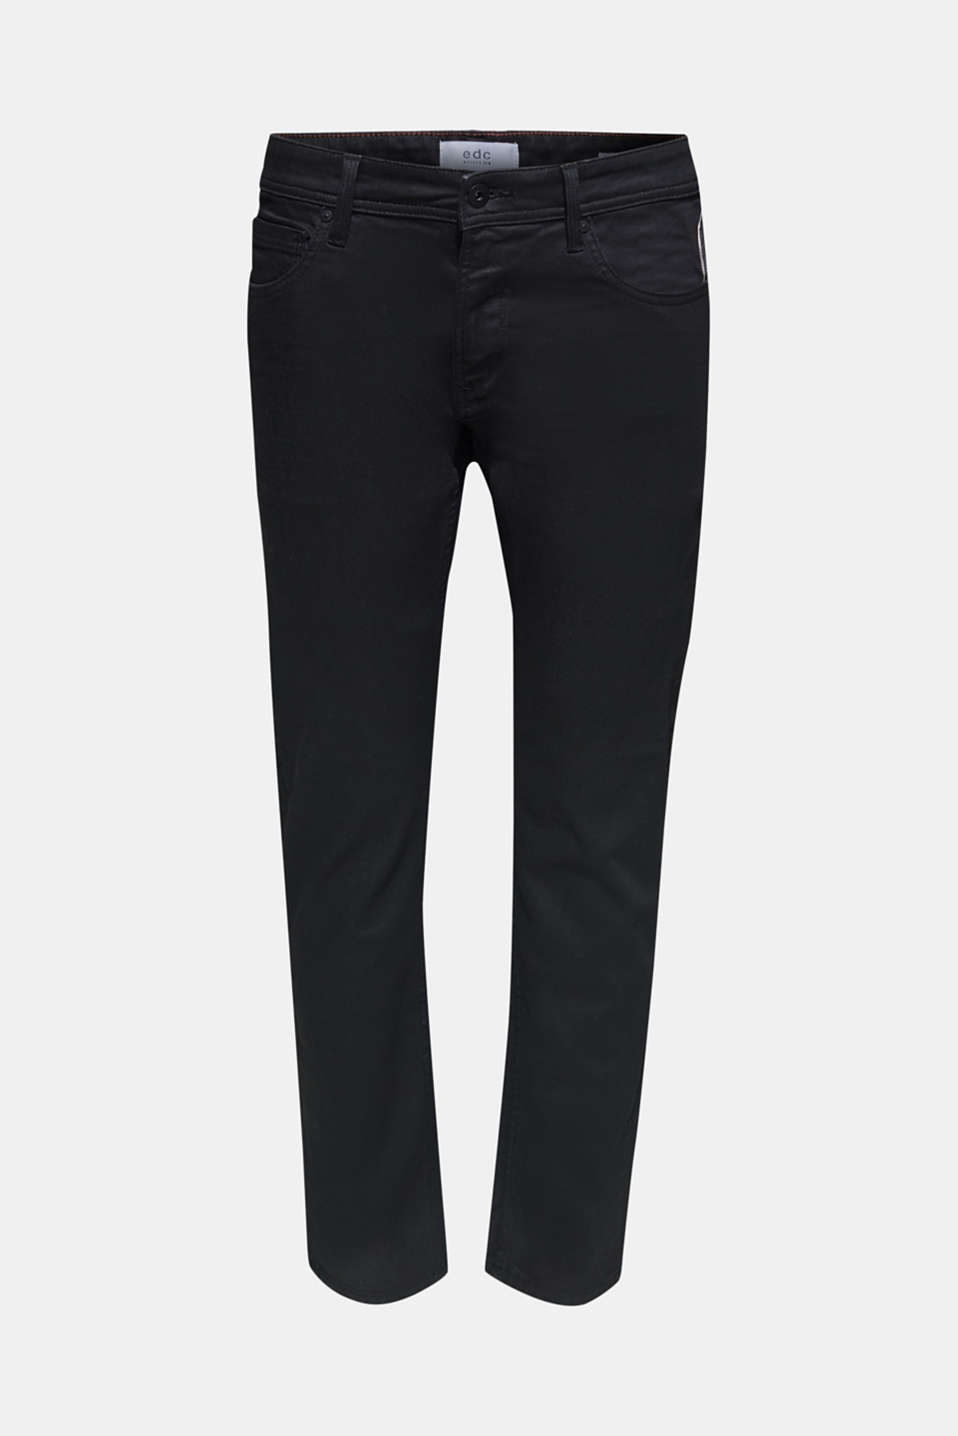 Stretch jeans in a coated finish, BLACK DARK WASH, detail image number 5